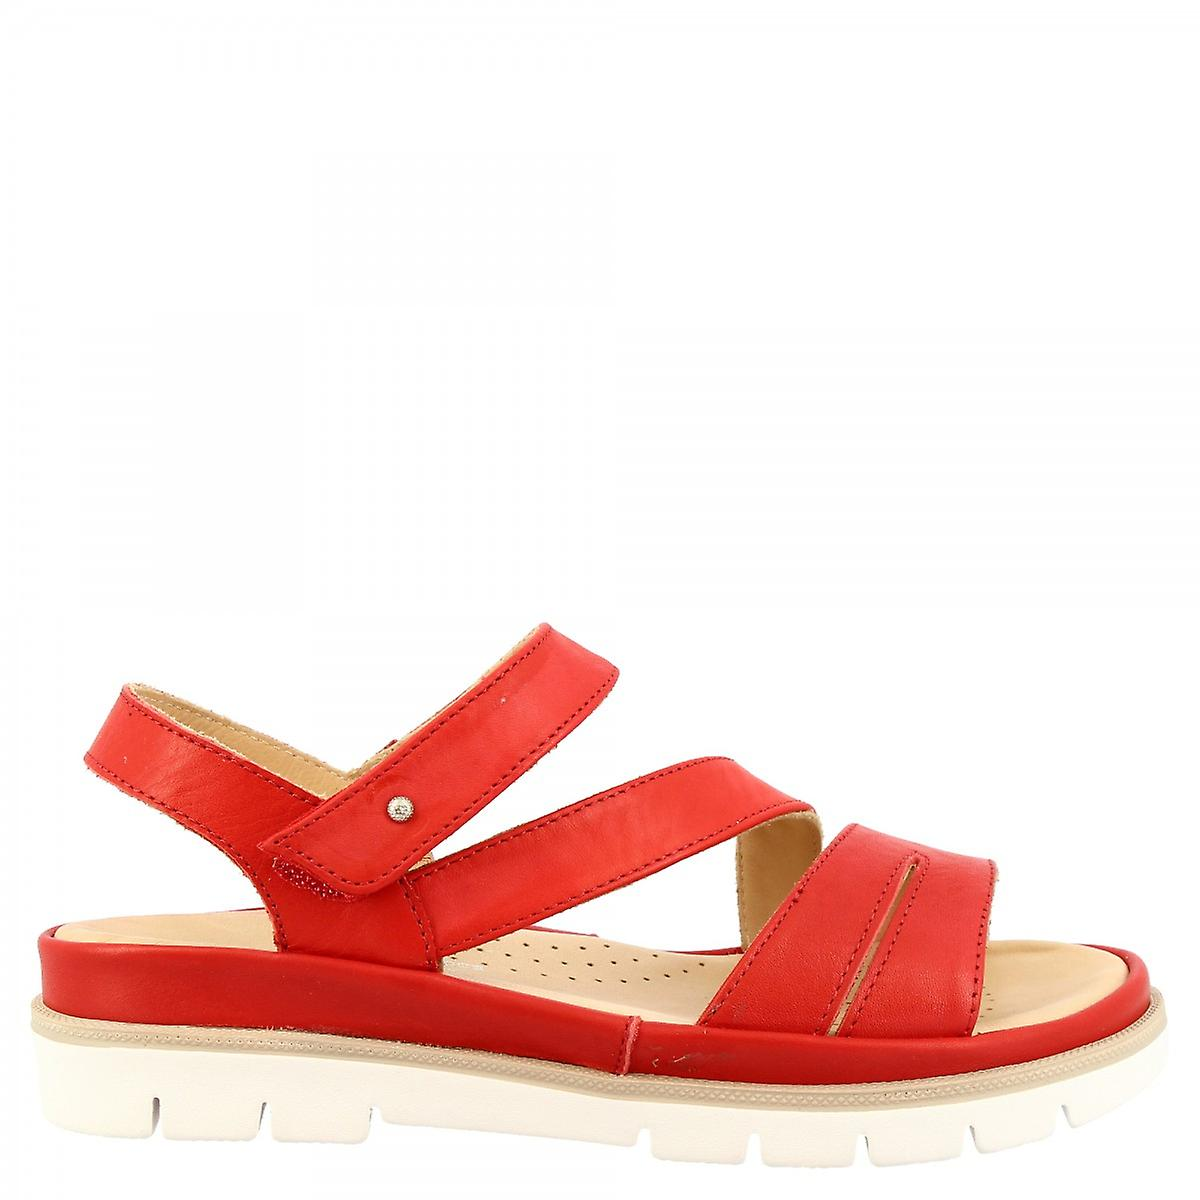 Leonardo Shoes Women's handmade comfortable flat sandals in red calf leather with velcro closure